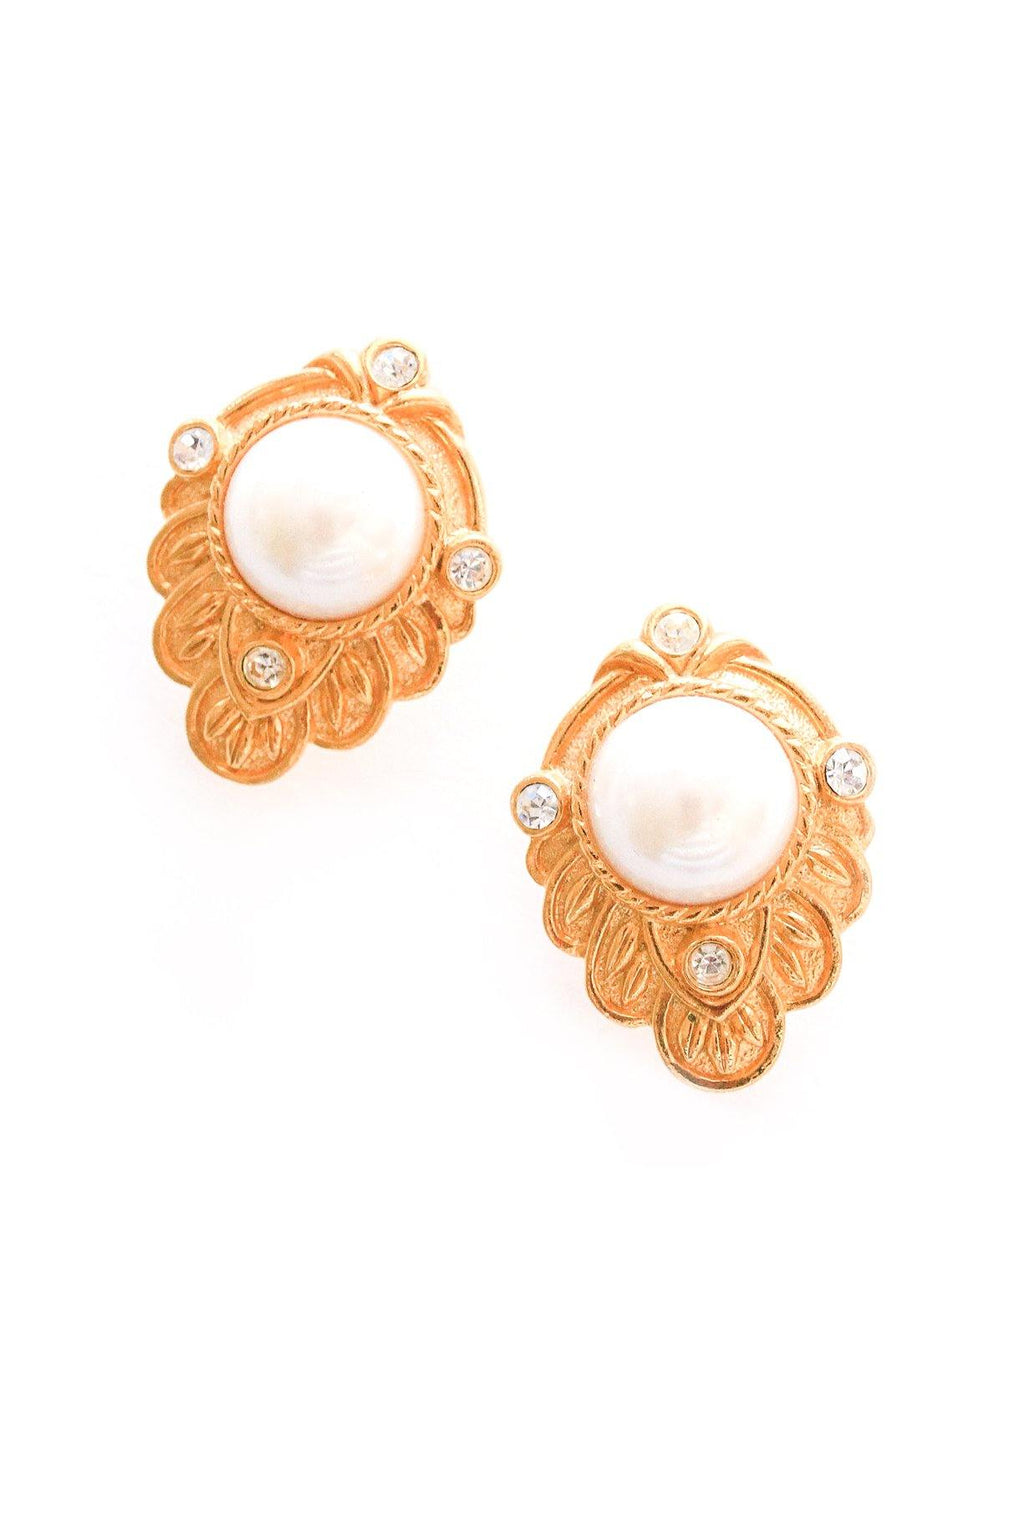 Pearl Statement Pierced Earrings